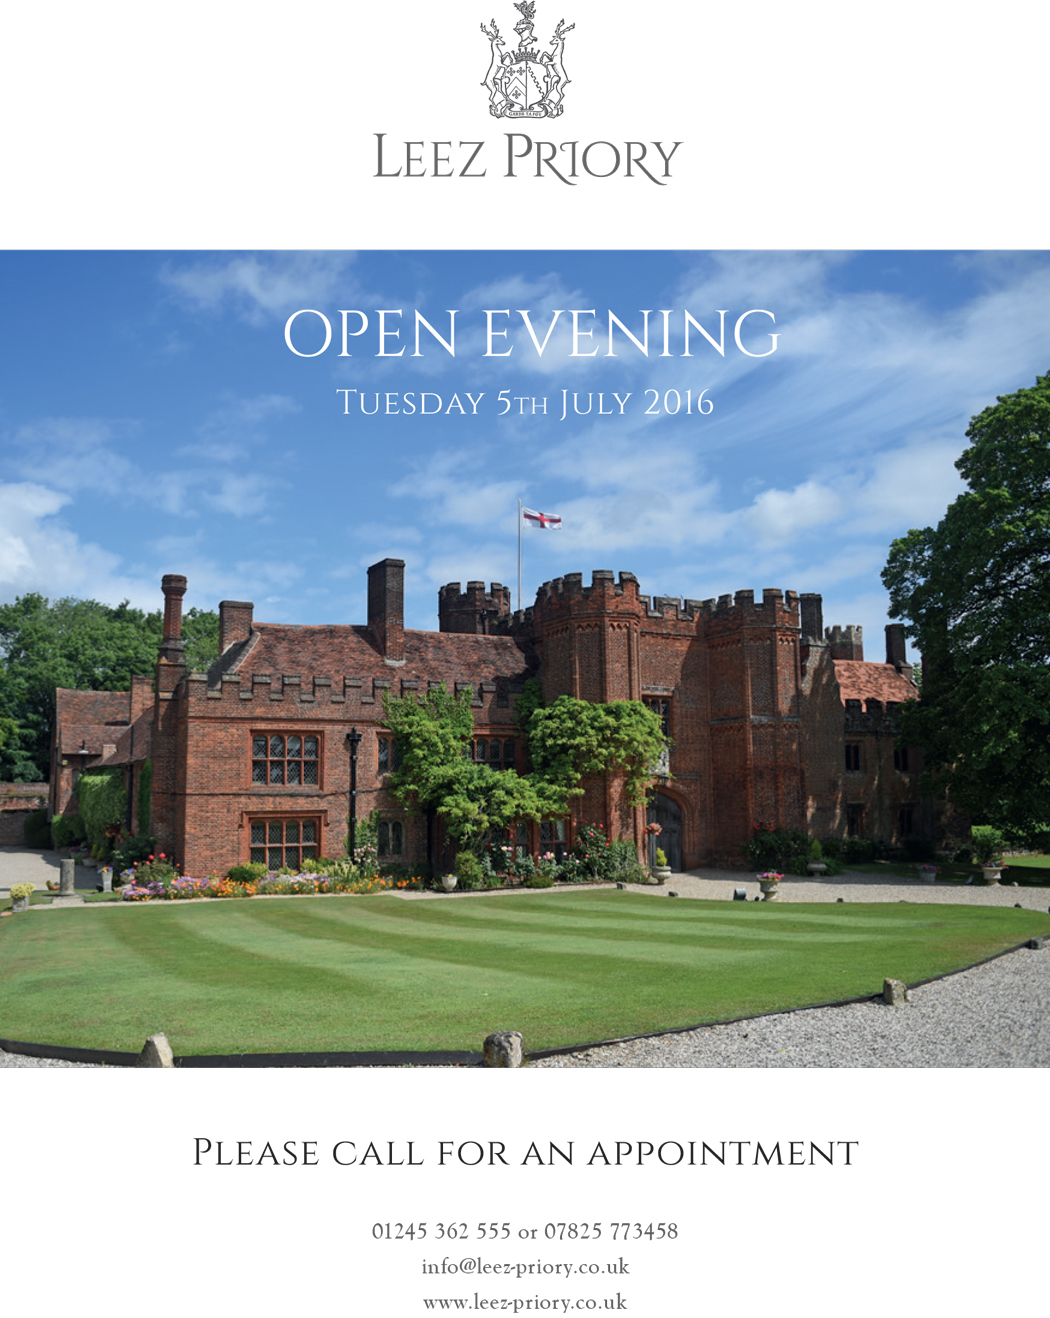 Leez-Priory-Open-Evening-Invitation-July-2016